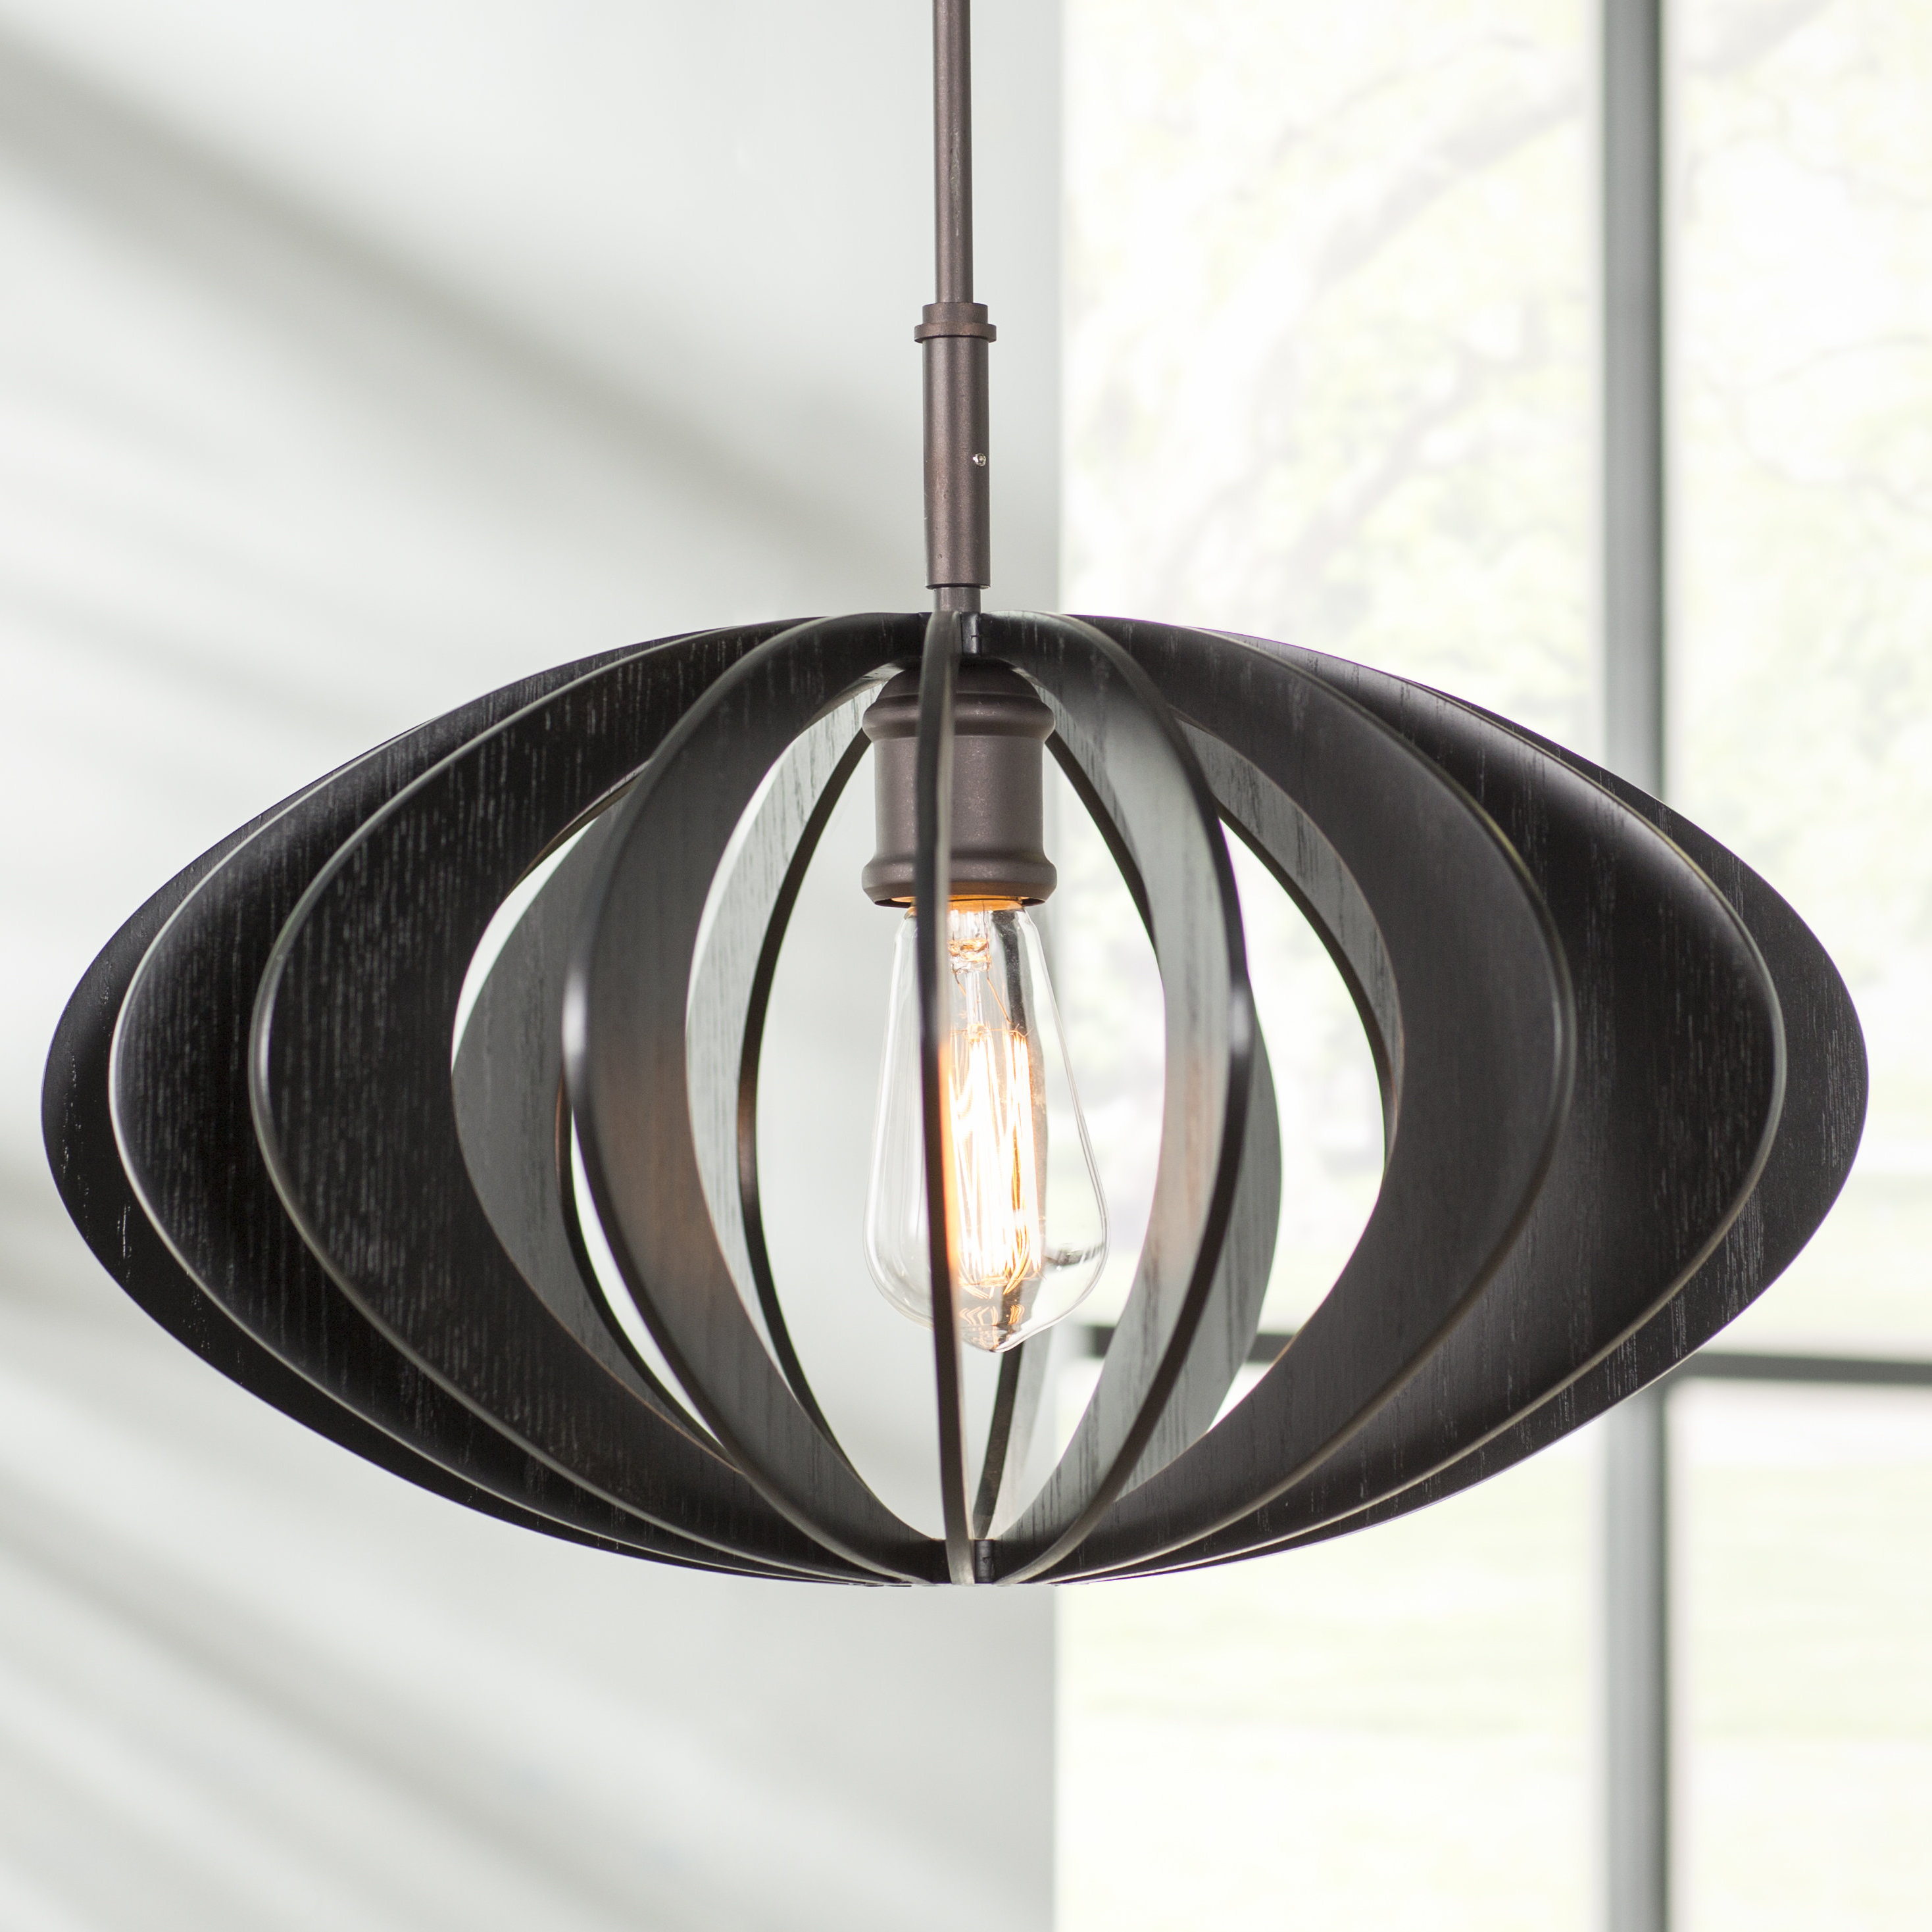 Fashionable Bair 1 Light Single Geometric Pendant Inside Melora 1 Light Single Geometric Pendants (View 7 of 25)